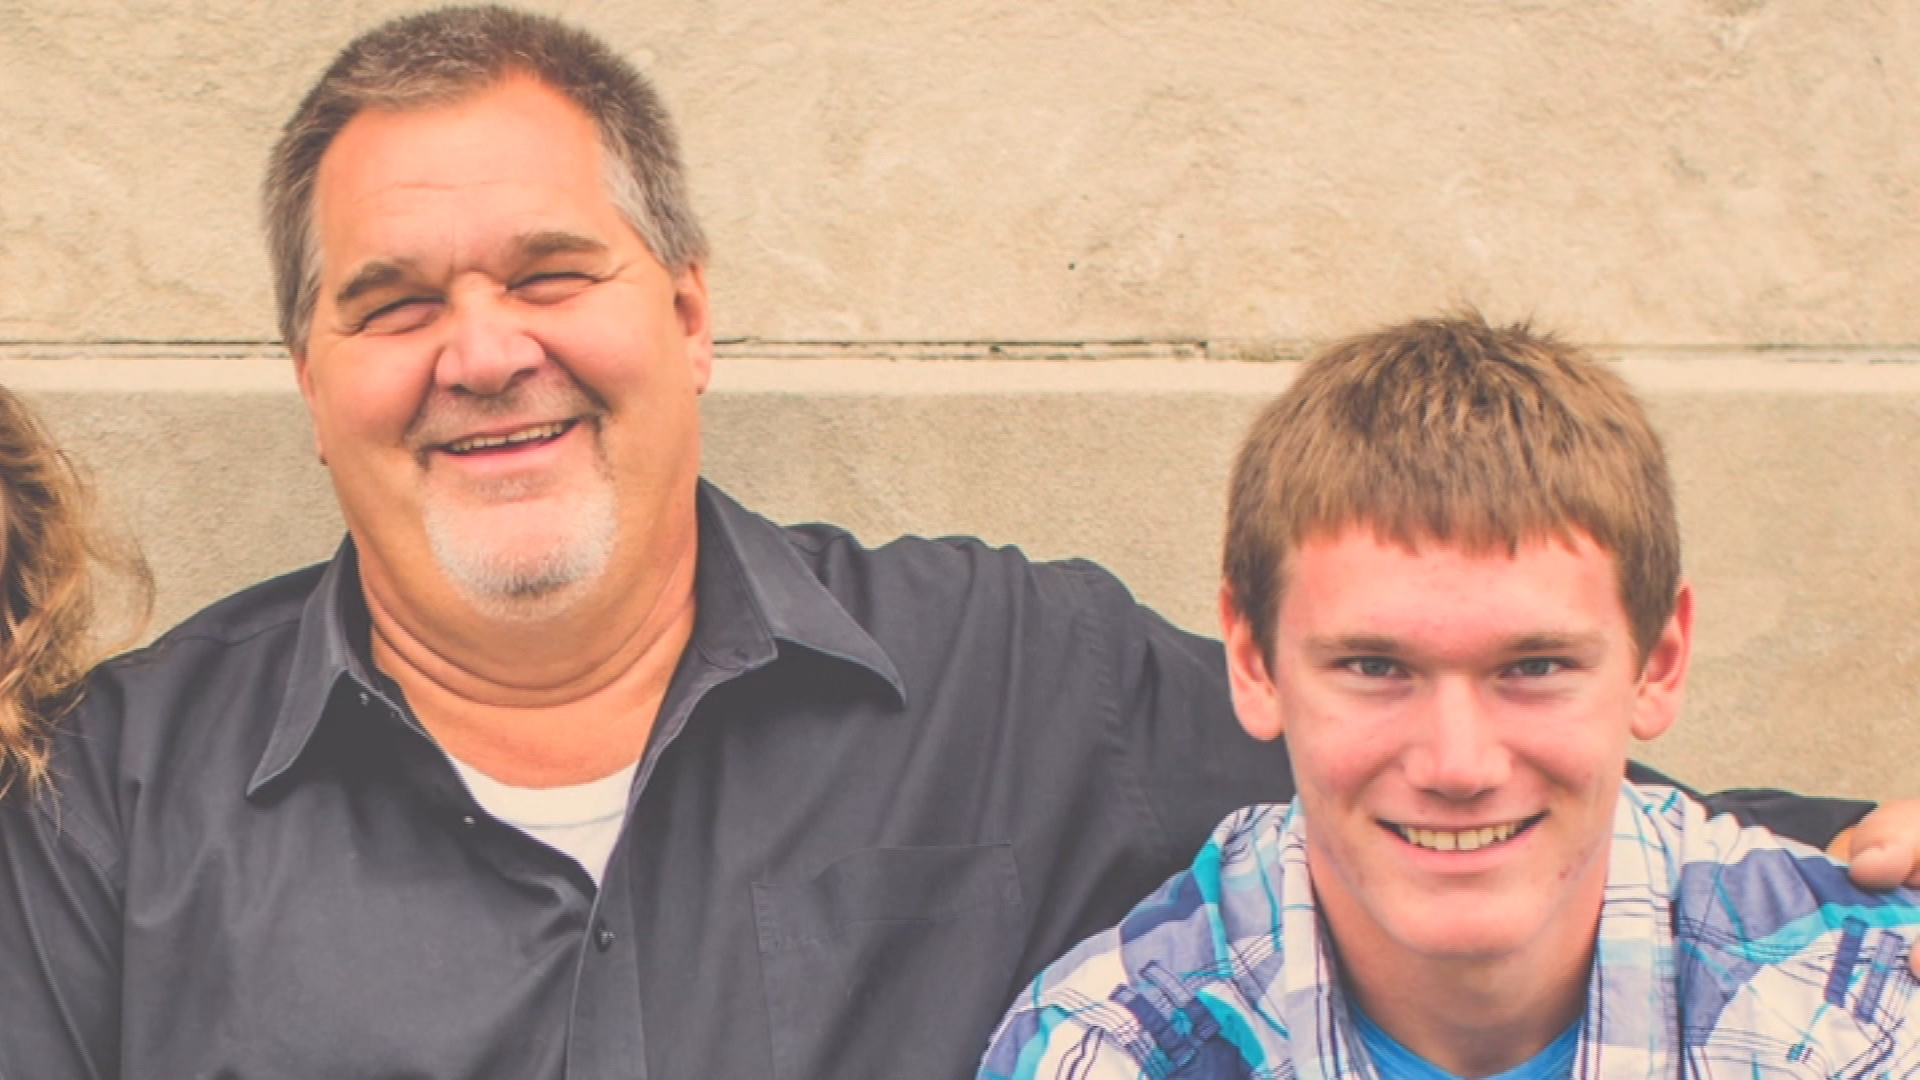 Richard Smith Jr, 53 and Tyler Smith, 17. A father and son survived by wife, mother Laurie Smith and daughter, sister Emily Smith. (FILE)